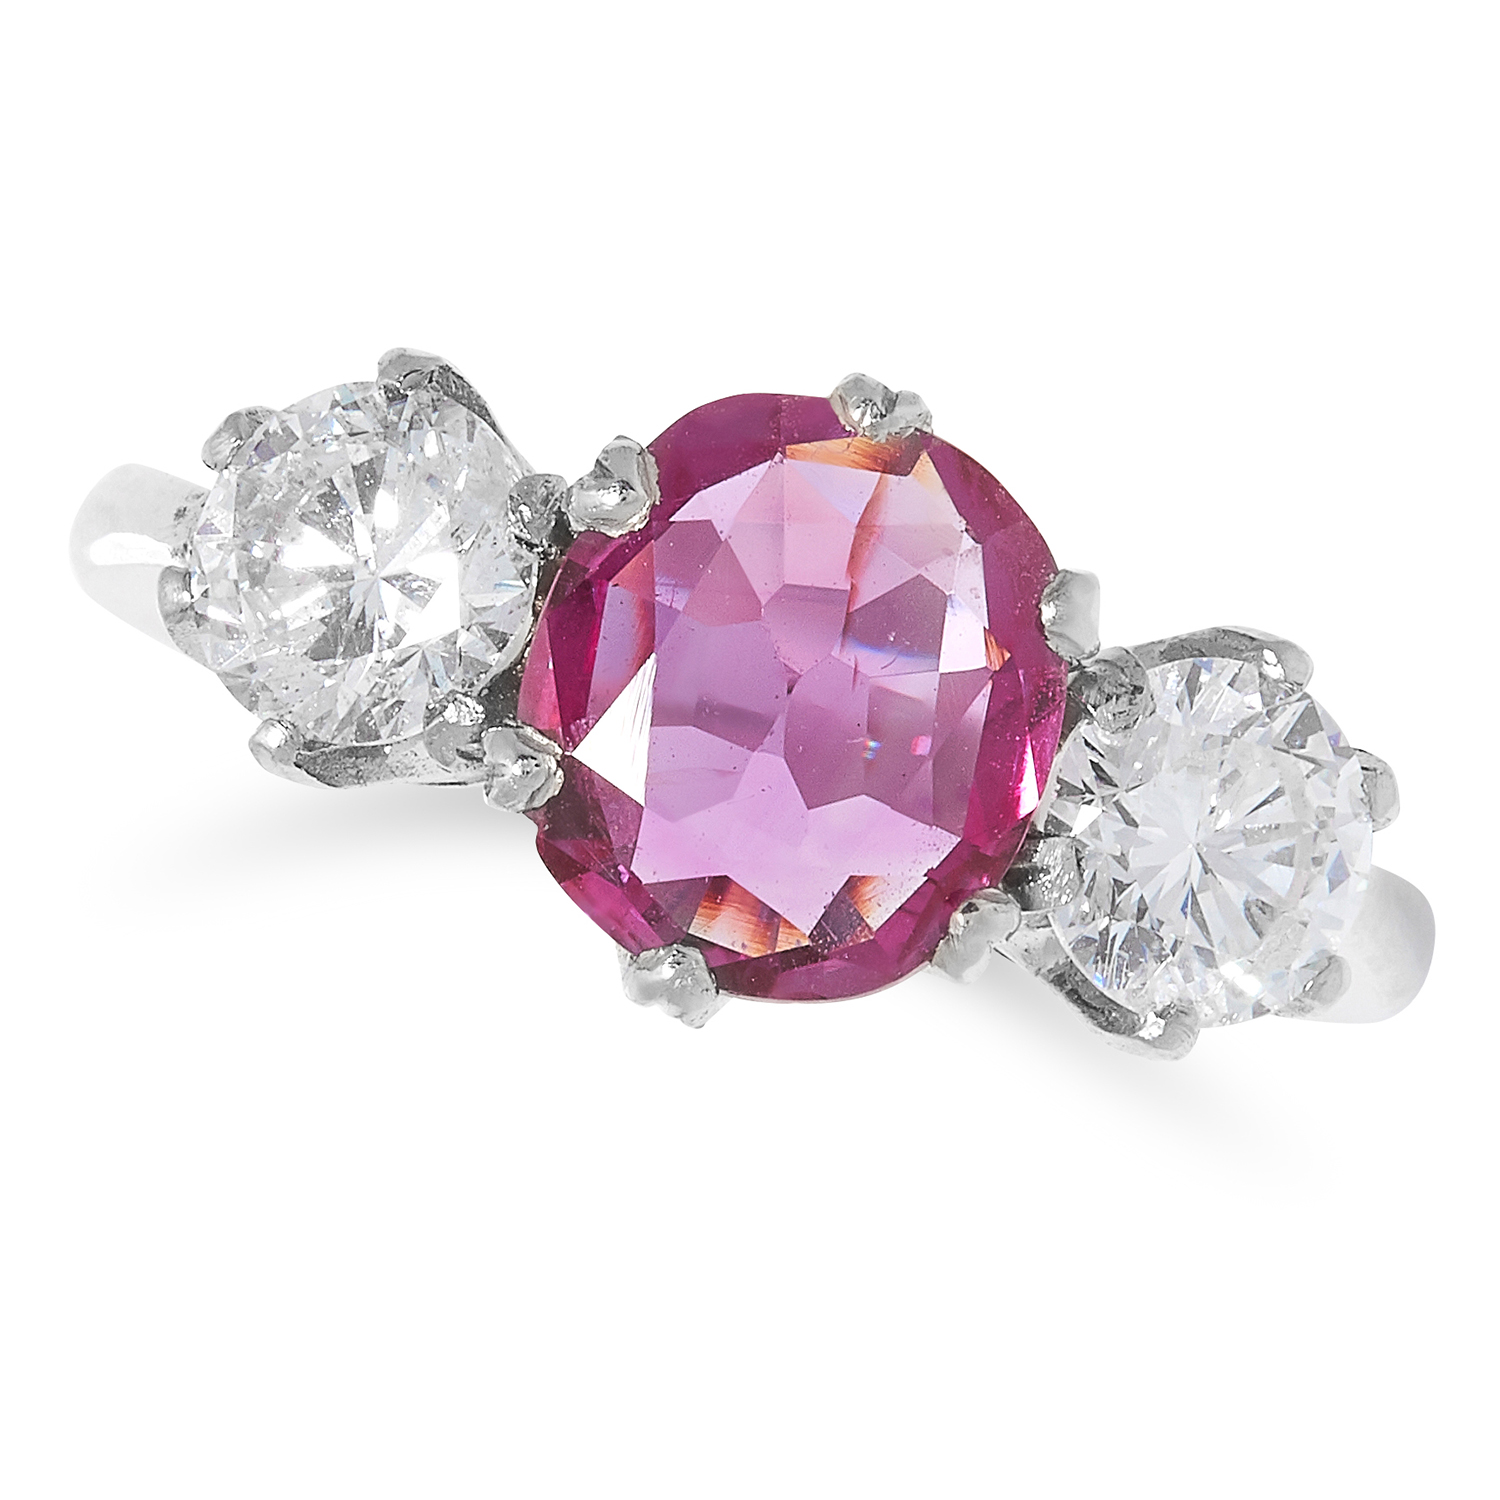 SPINEL AND DIAMOND THREE STONE RING set with a round cut spinel of approximately 1.28 carats between